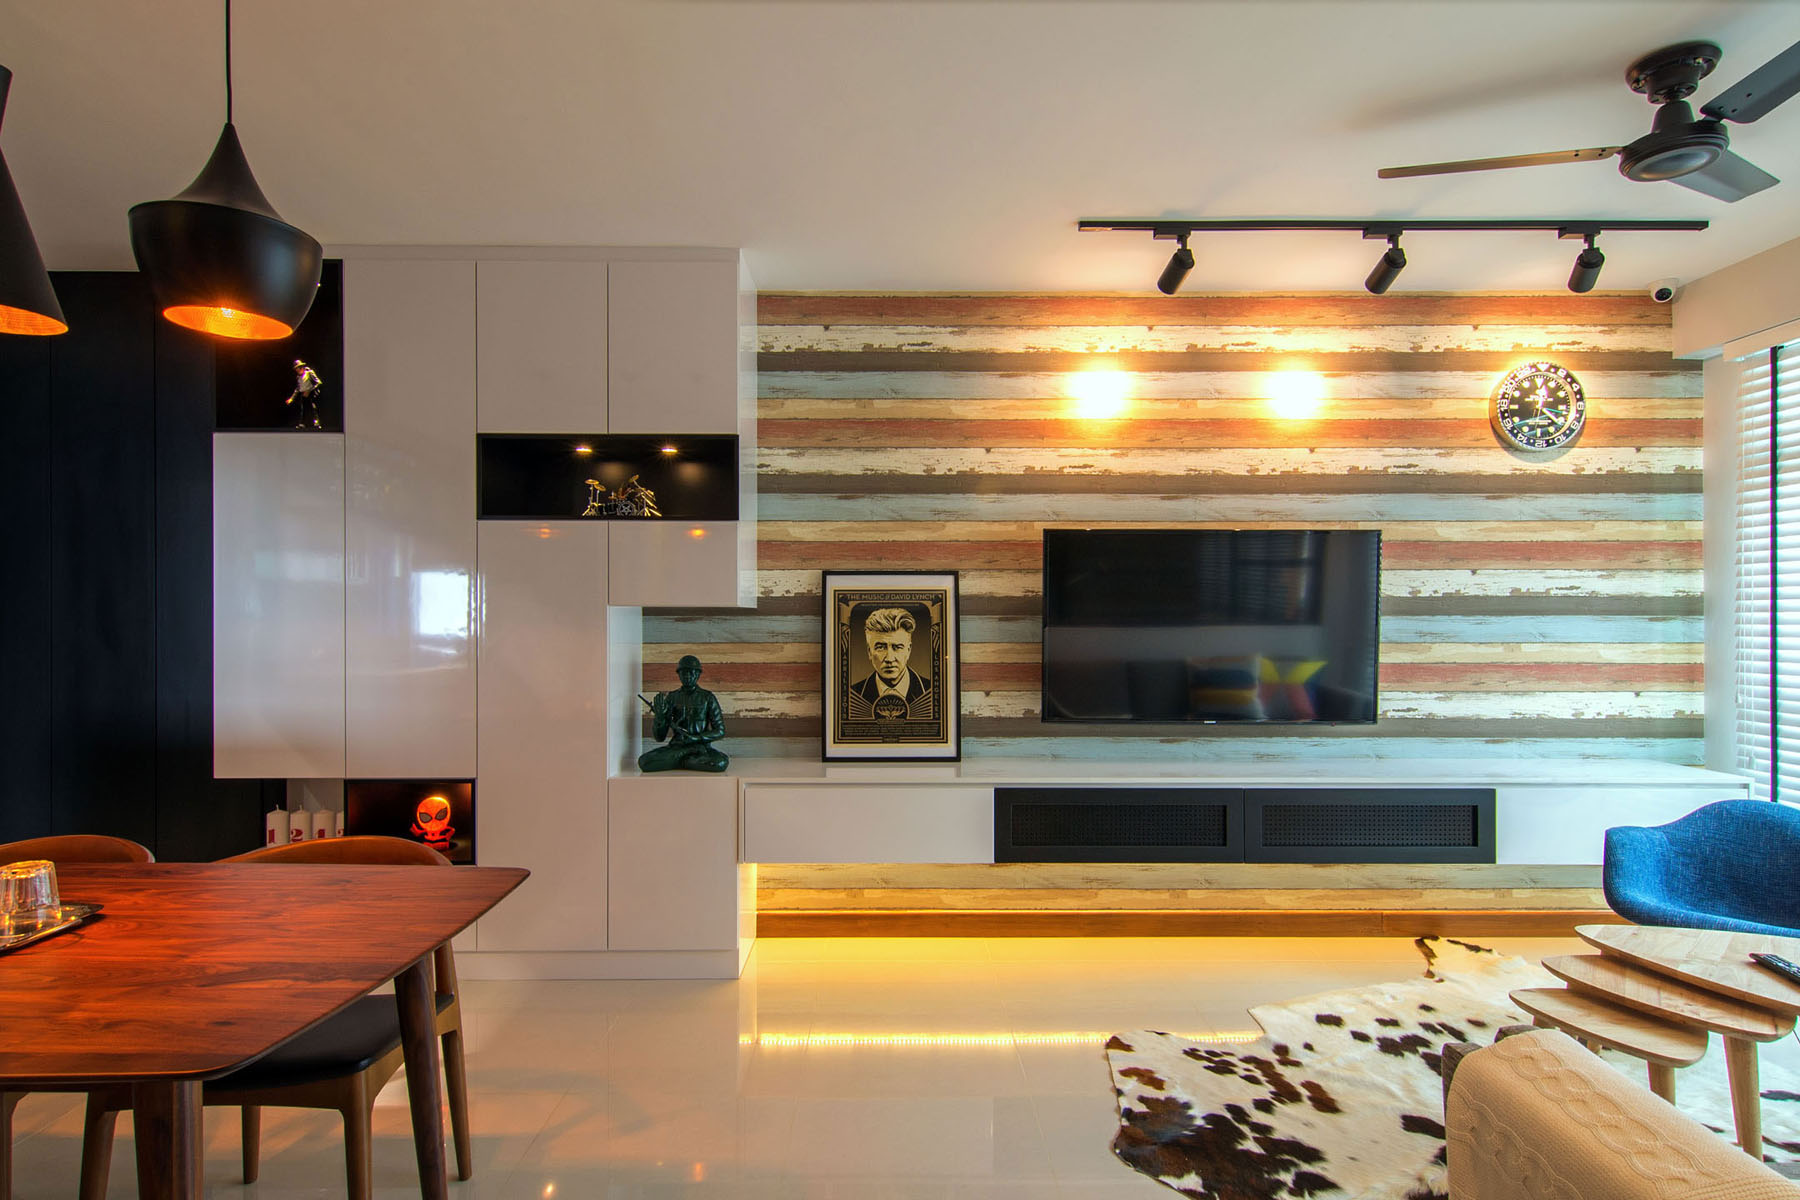 Cozy Apartment In Singapore With Stylish Elements Idesignarch Interior Design Architecture